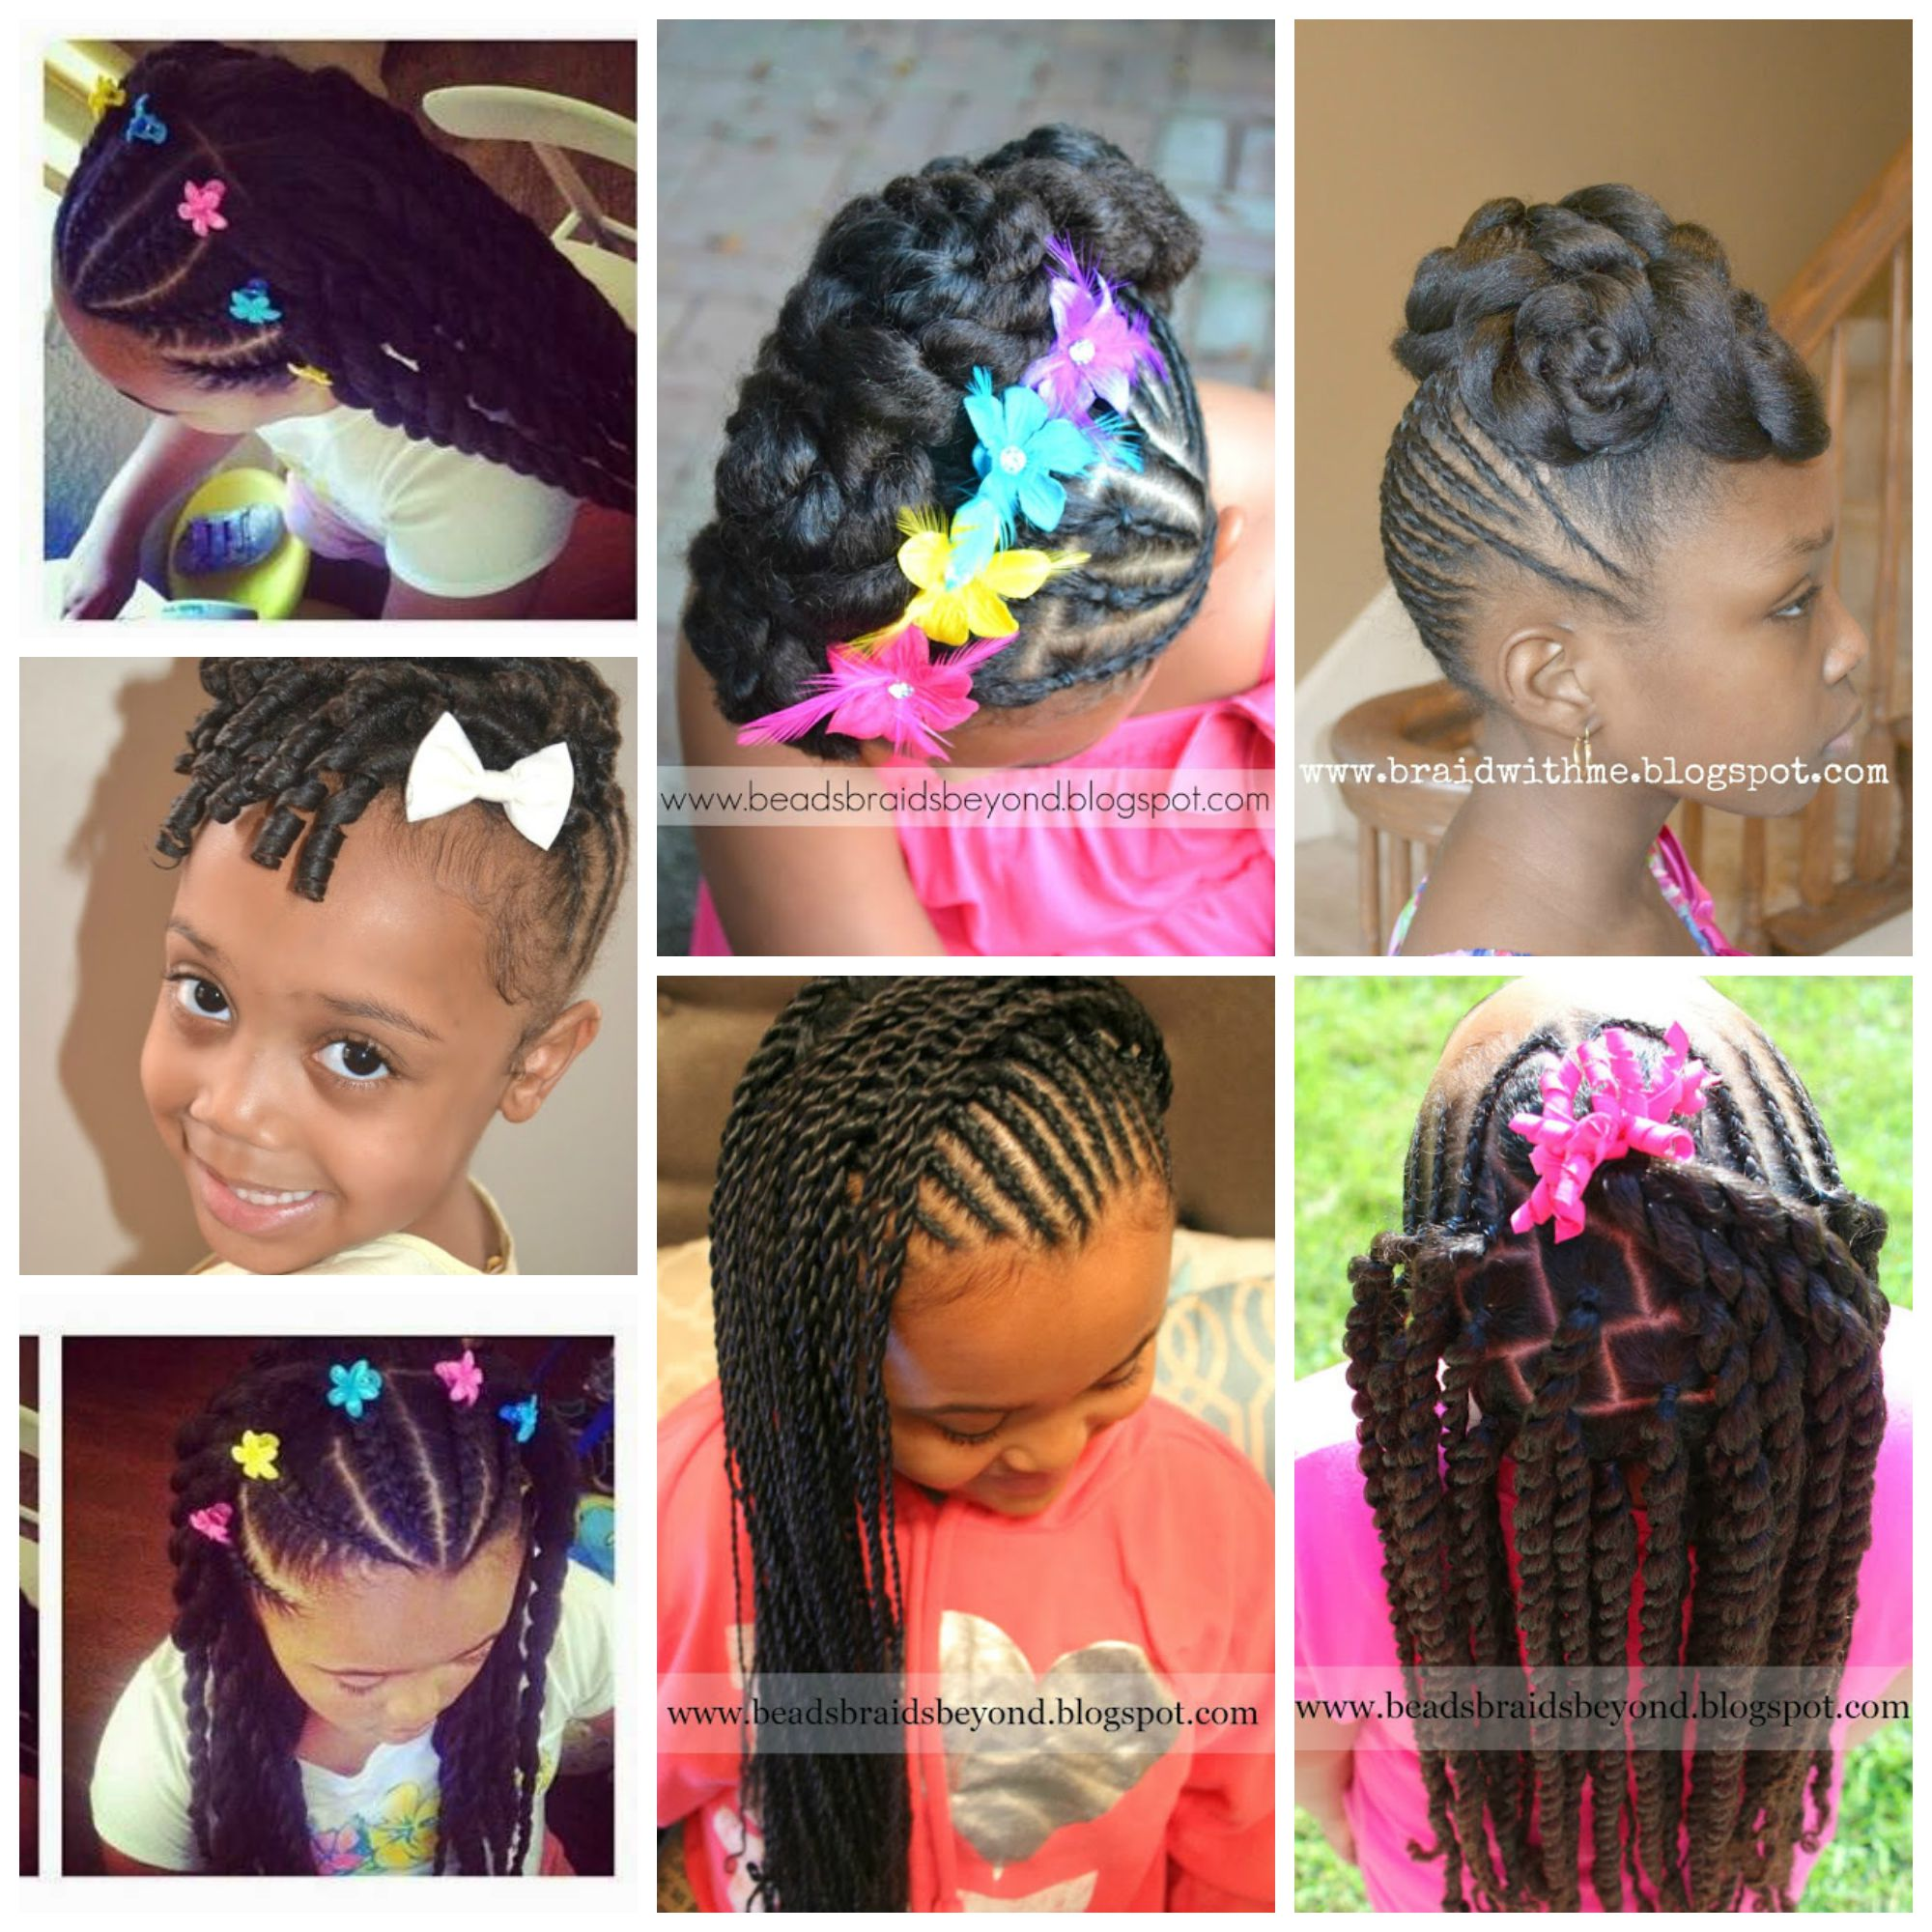 jjbraids.com back to school braids